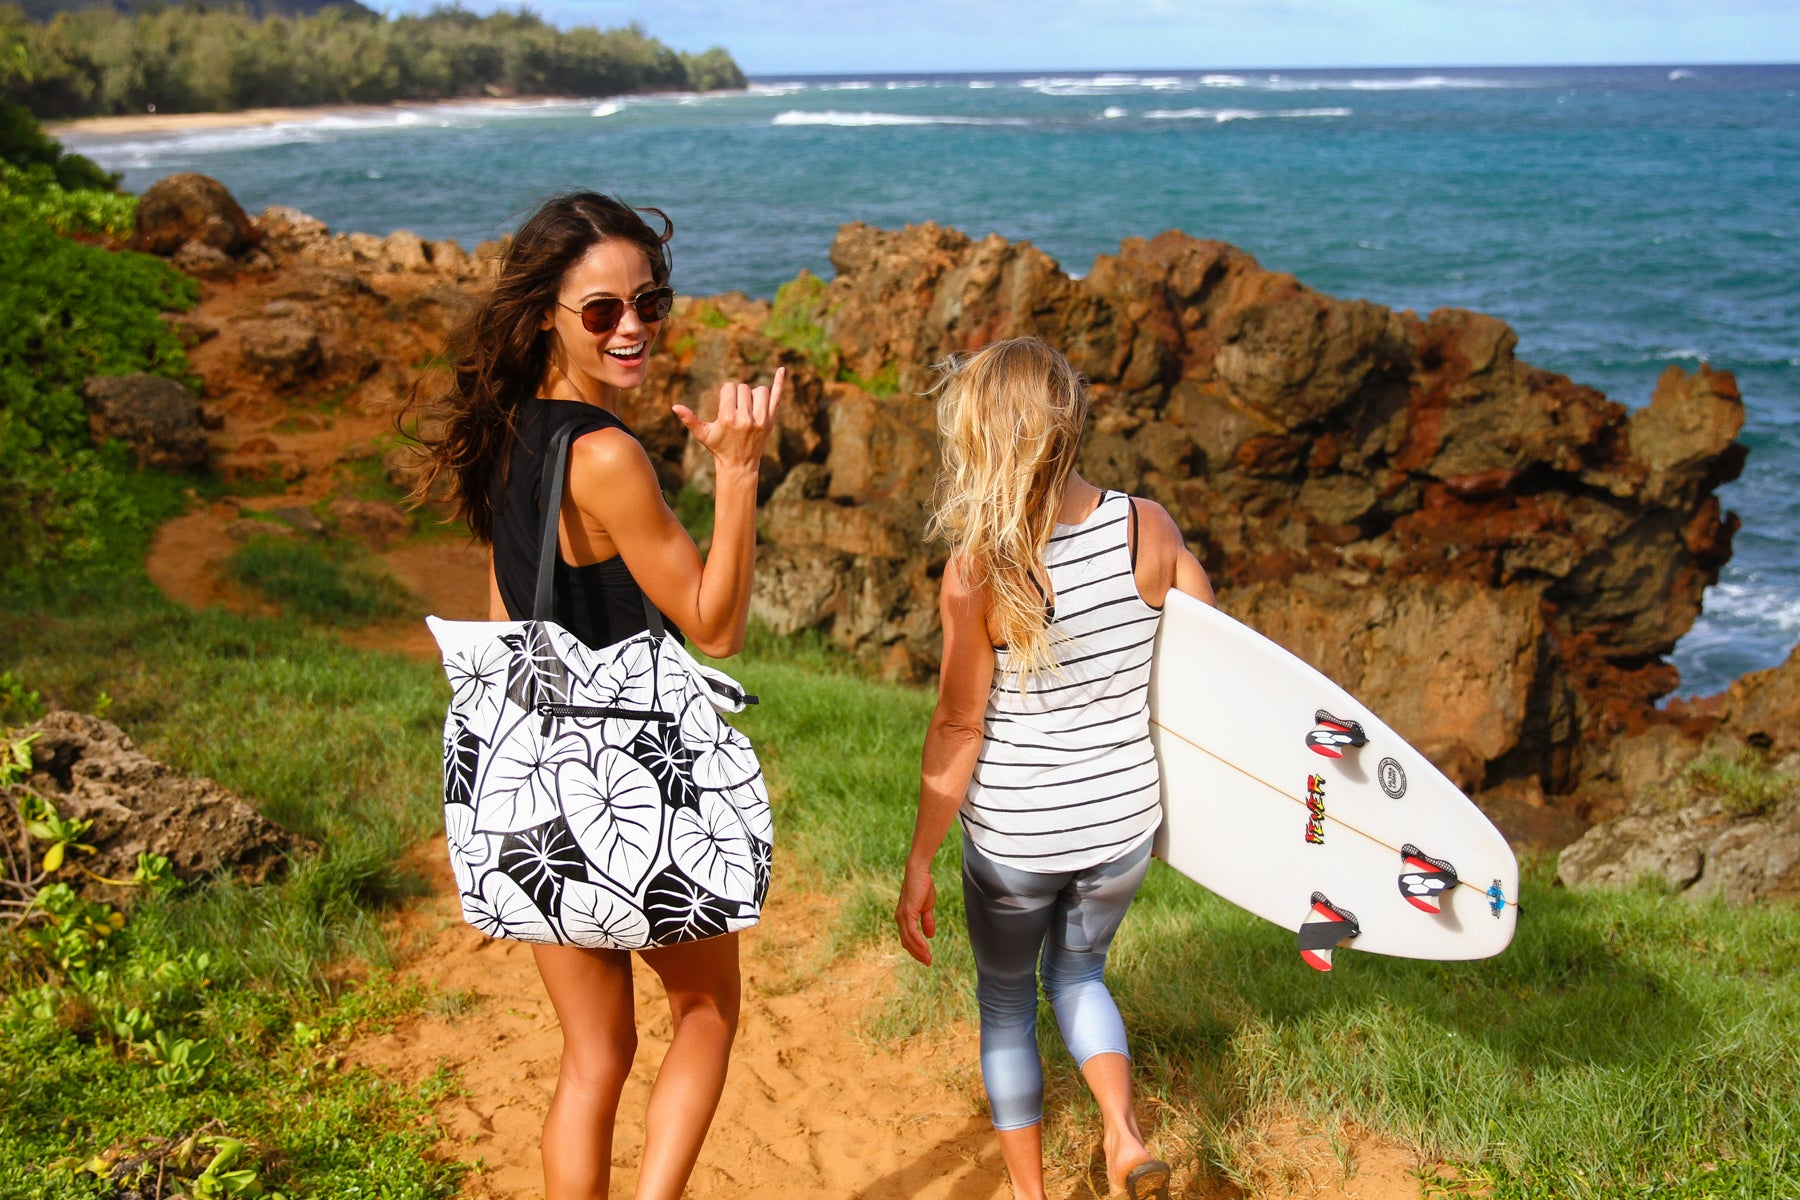 The Ultimate Day Bag and Christmas gift!  Taro Tote Bag collab with Aloha Collection